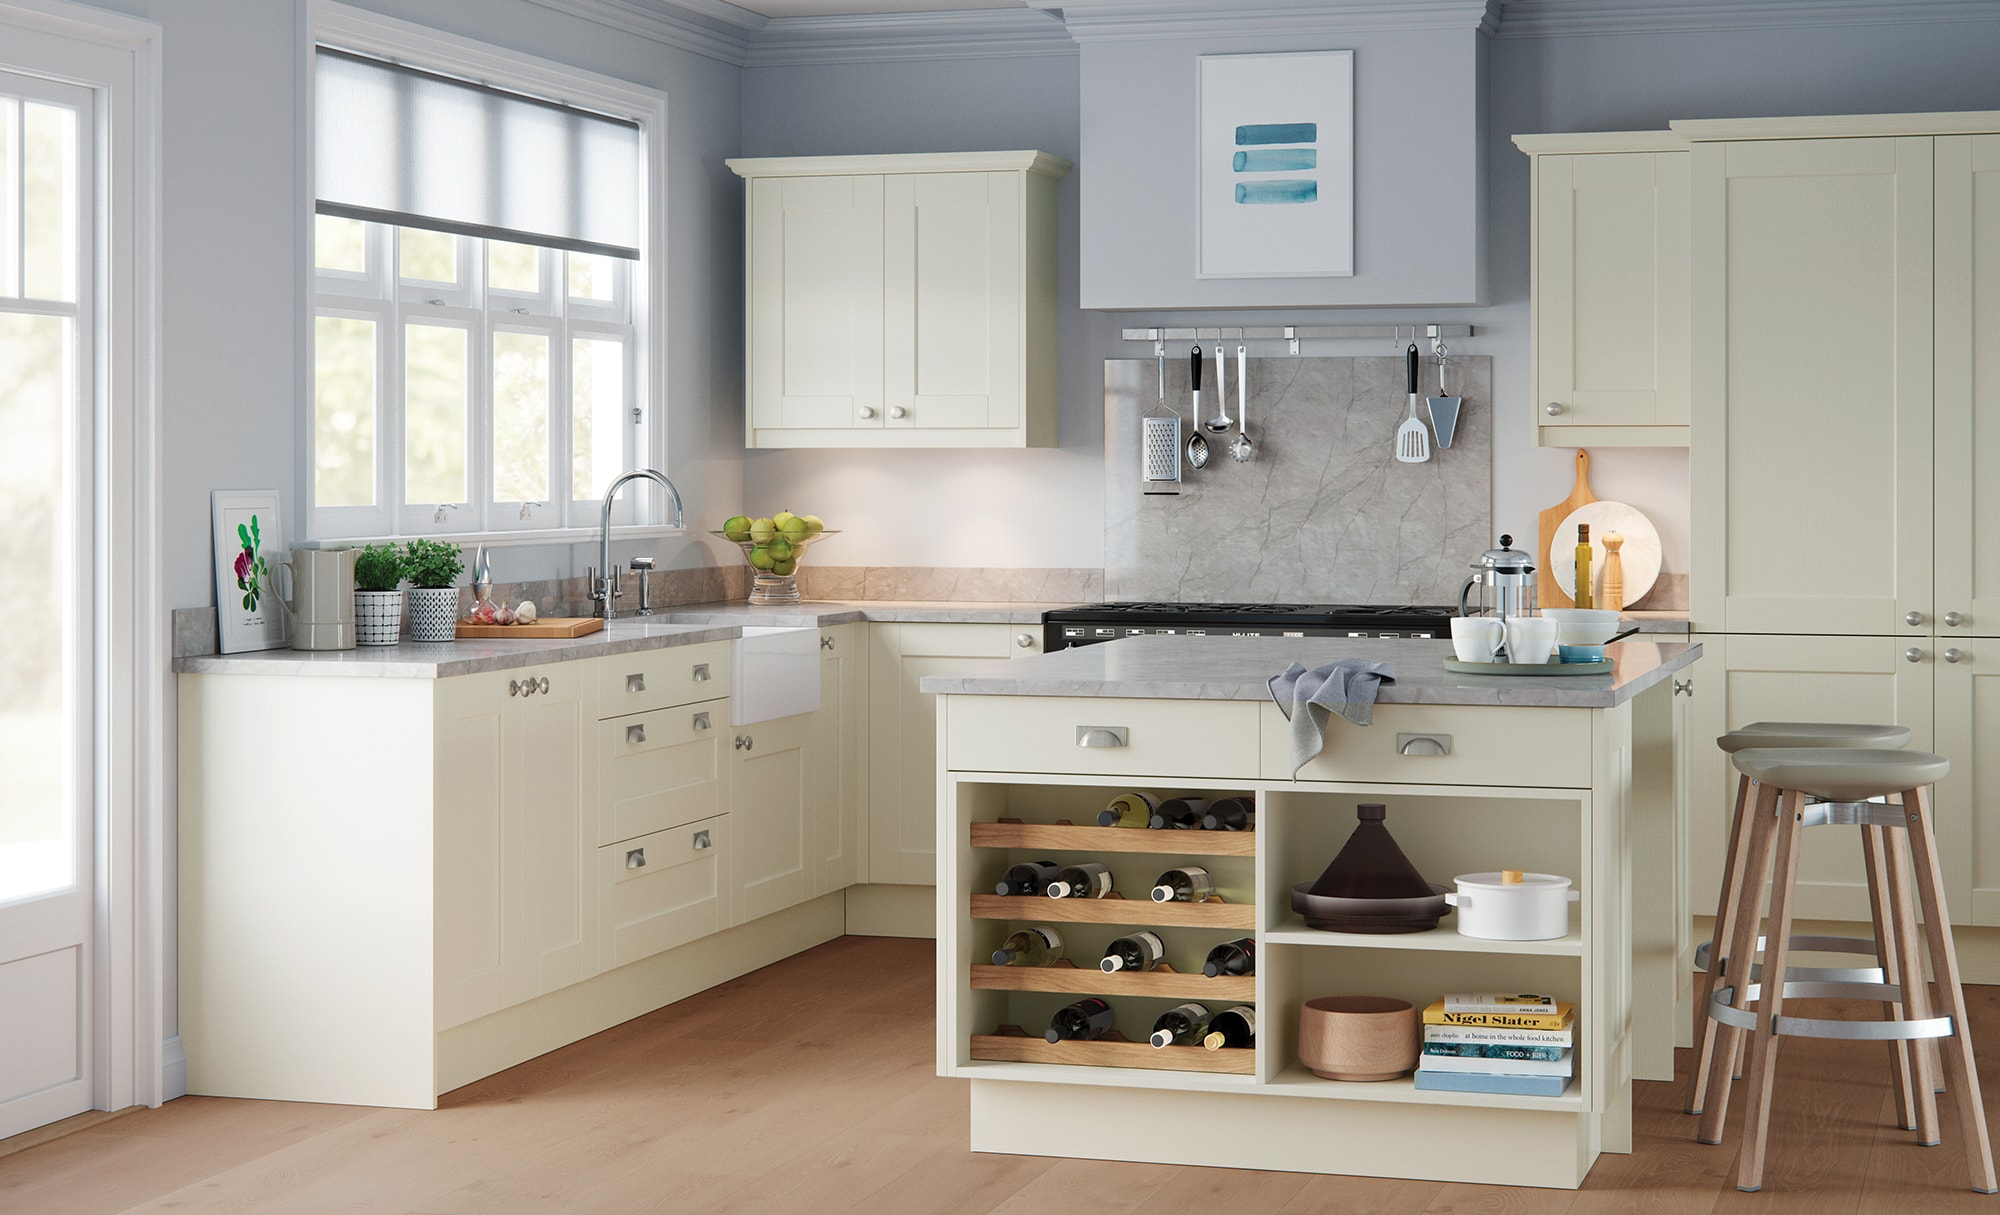 Classic Traditional Kensington Shaker Kitchen in Painted Porcelain